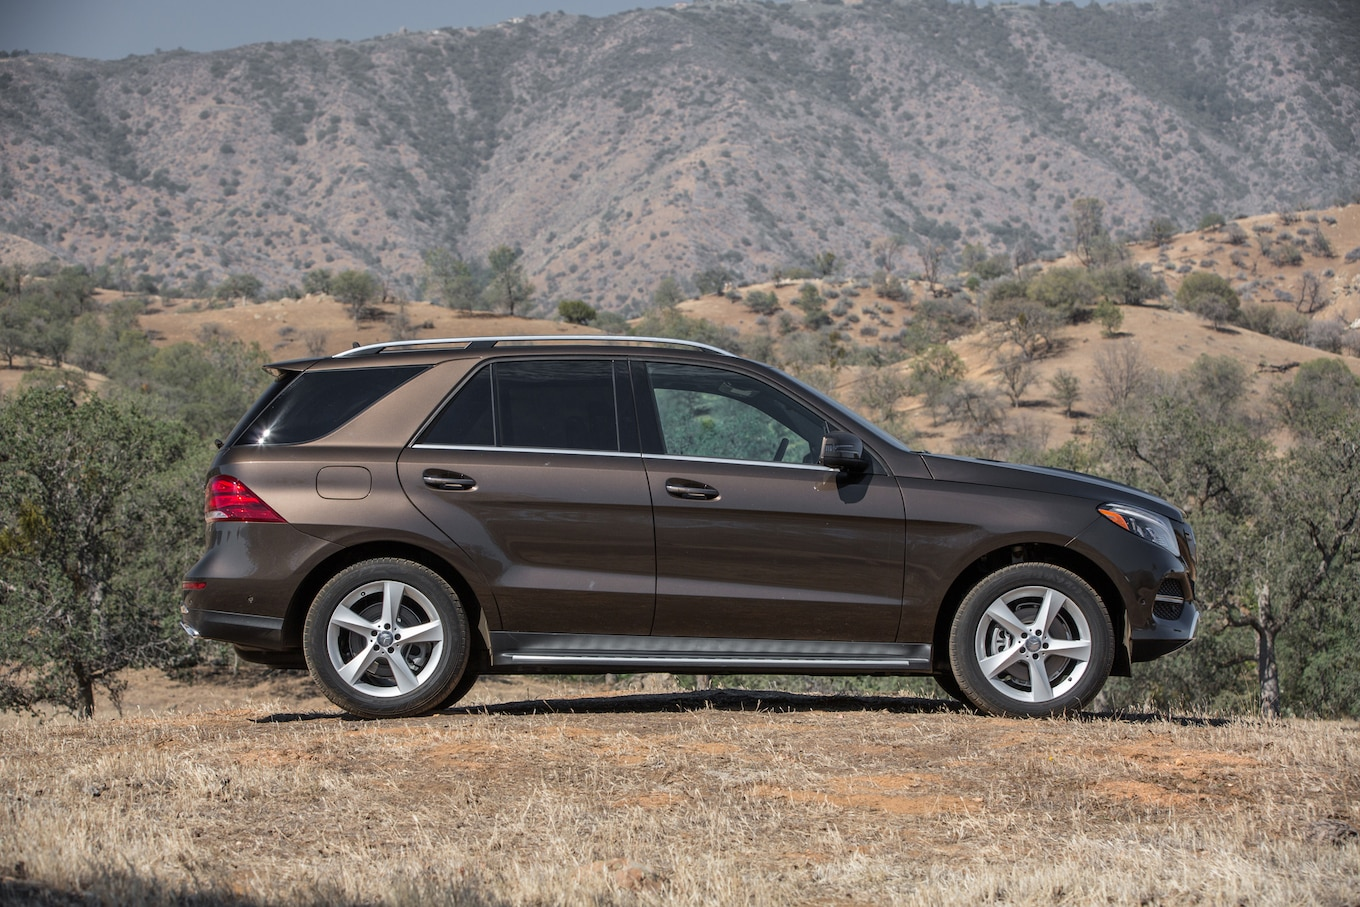 Mercedes Suv 2016 Mercedes Benz Gle Class 2016 Motor Trend Suv Of The Year